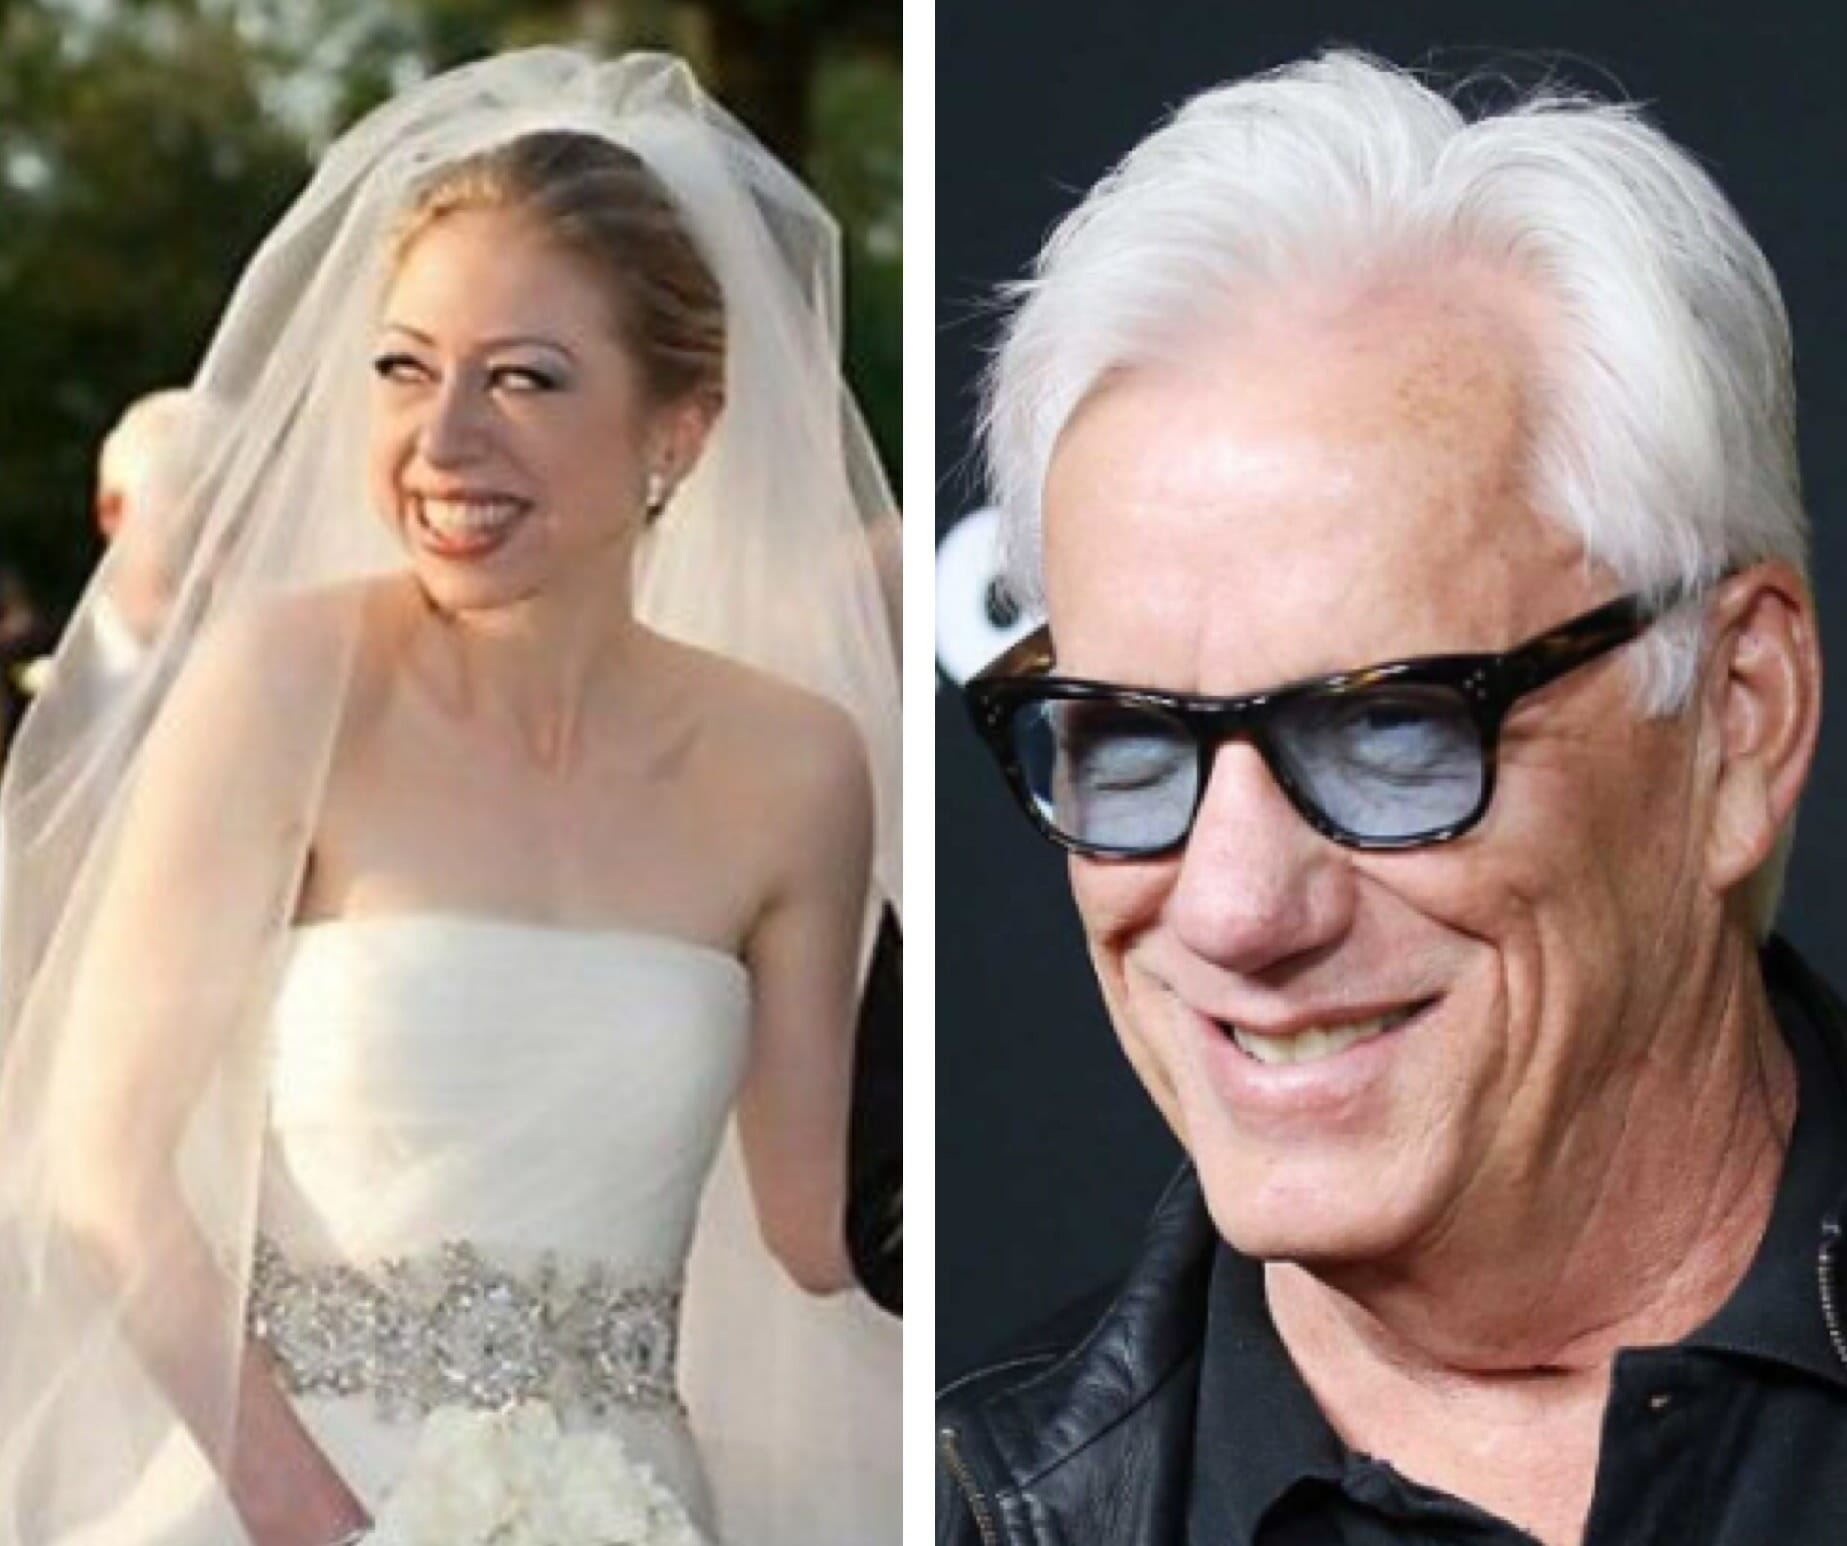 James Woods Moves in With Kill Shot After Chelsea Clinton Lectures POTUS Trump on Haiti